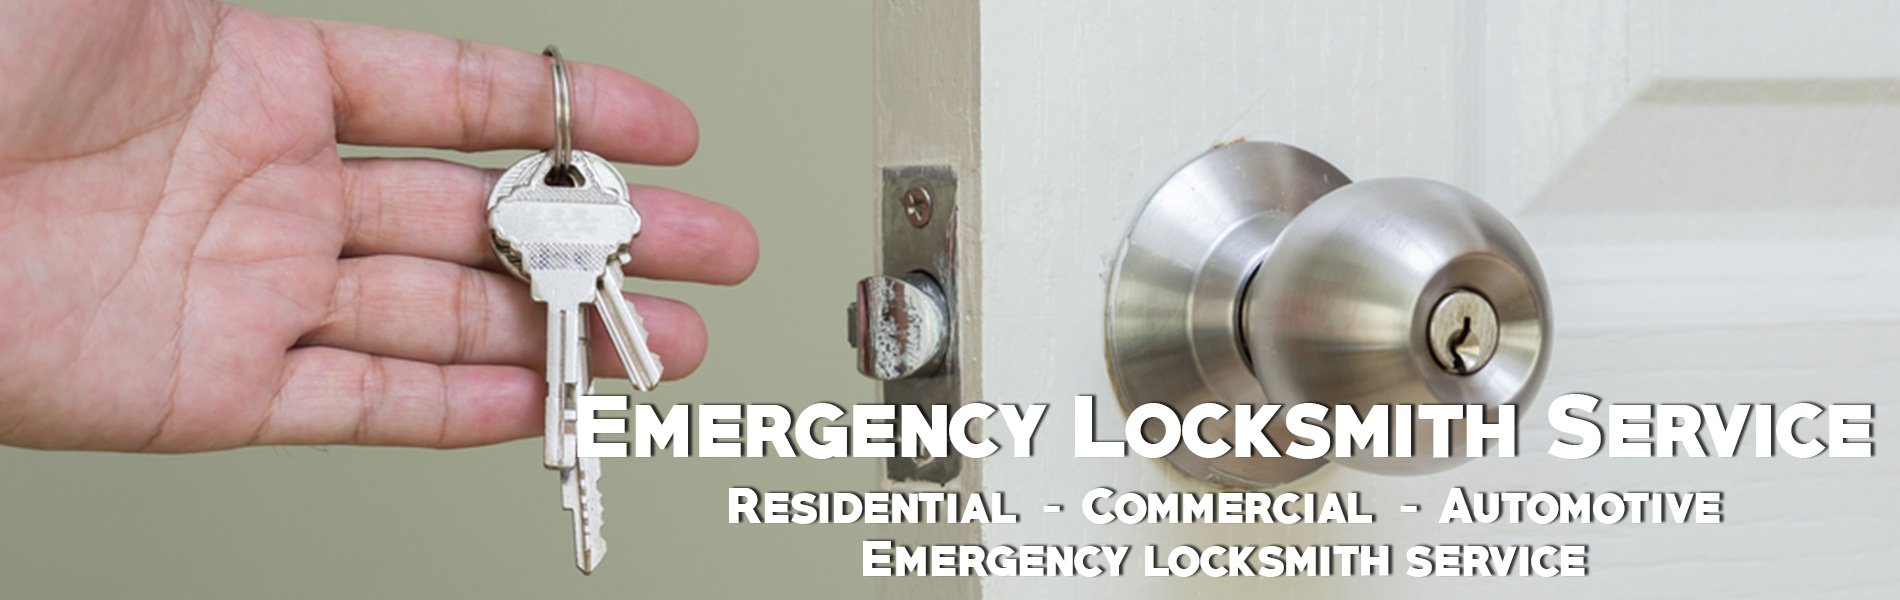 Elite Locksmith Services Tustin, CA 714-923-1187